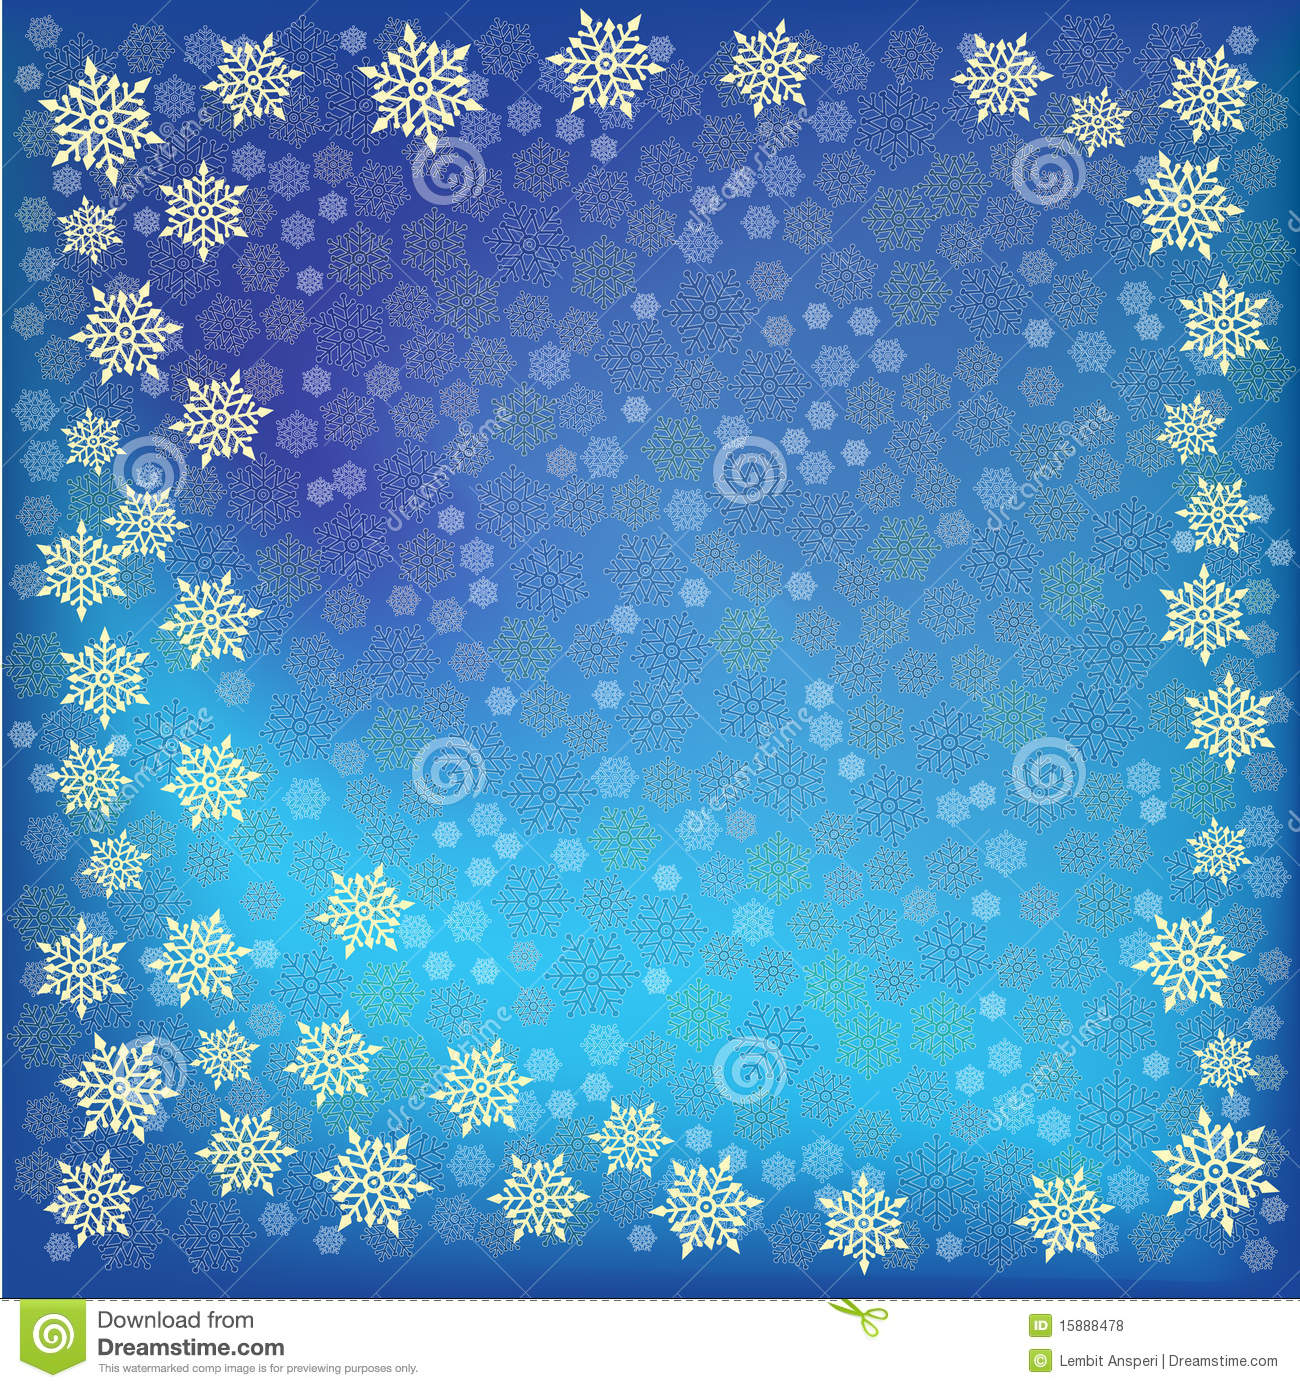 Abstract christmas blue Snowflakes background